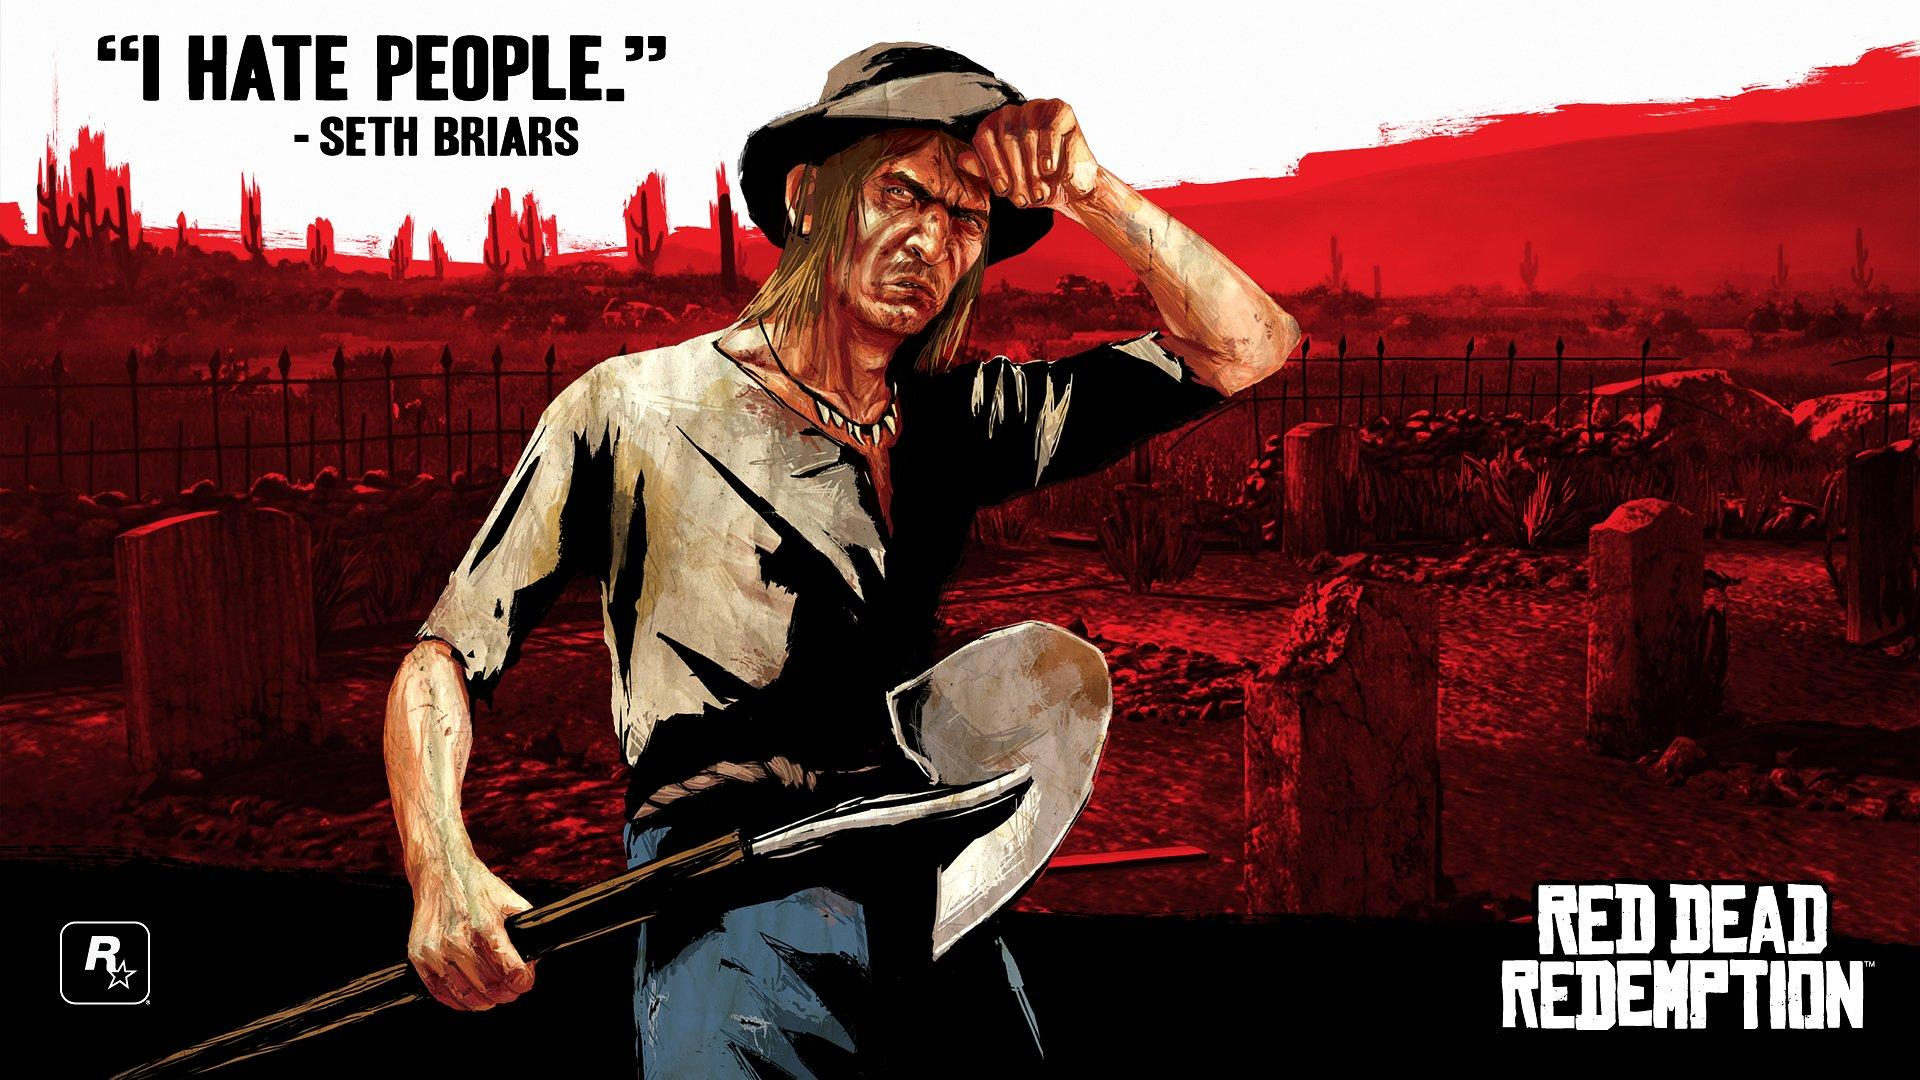 Red Dead Redemption Wallpaper Red Dead Redemption Seth Briars